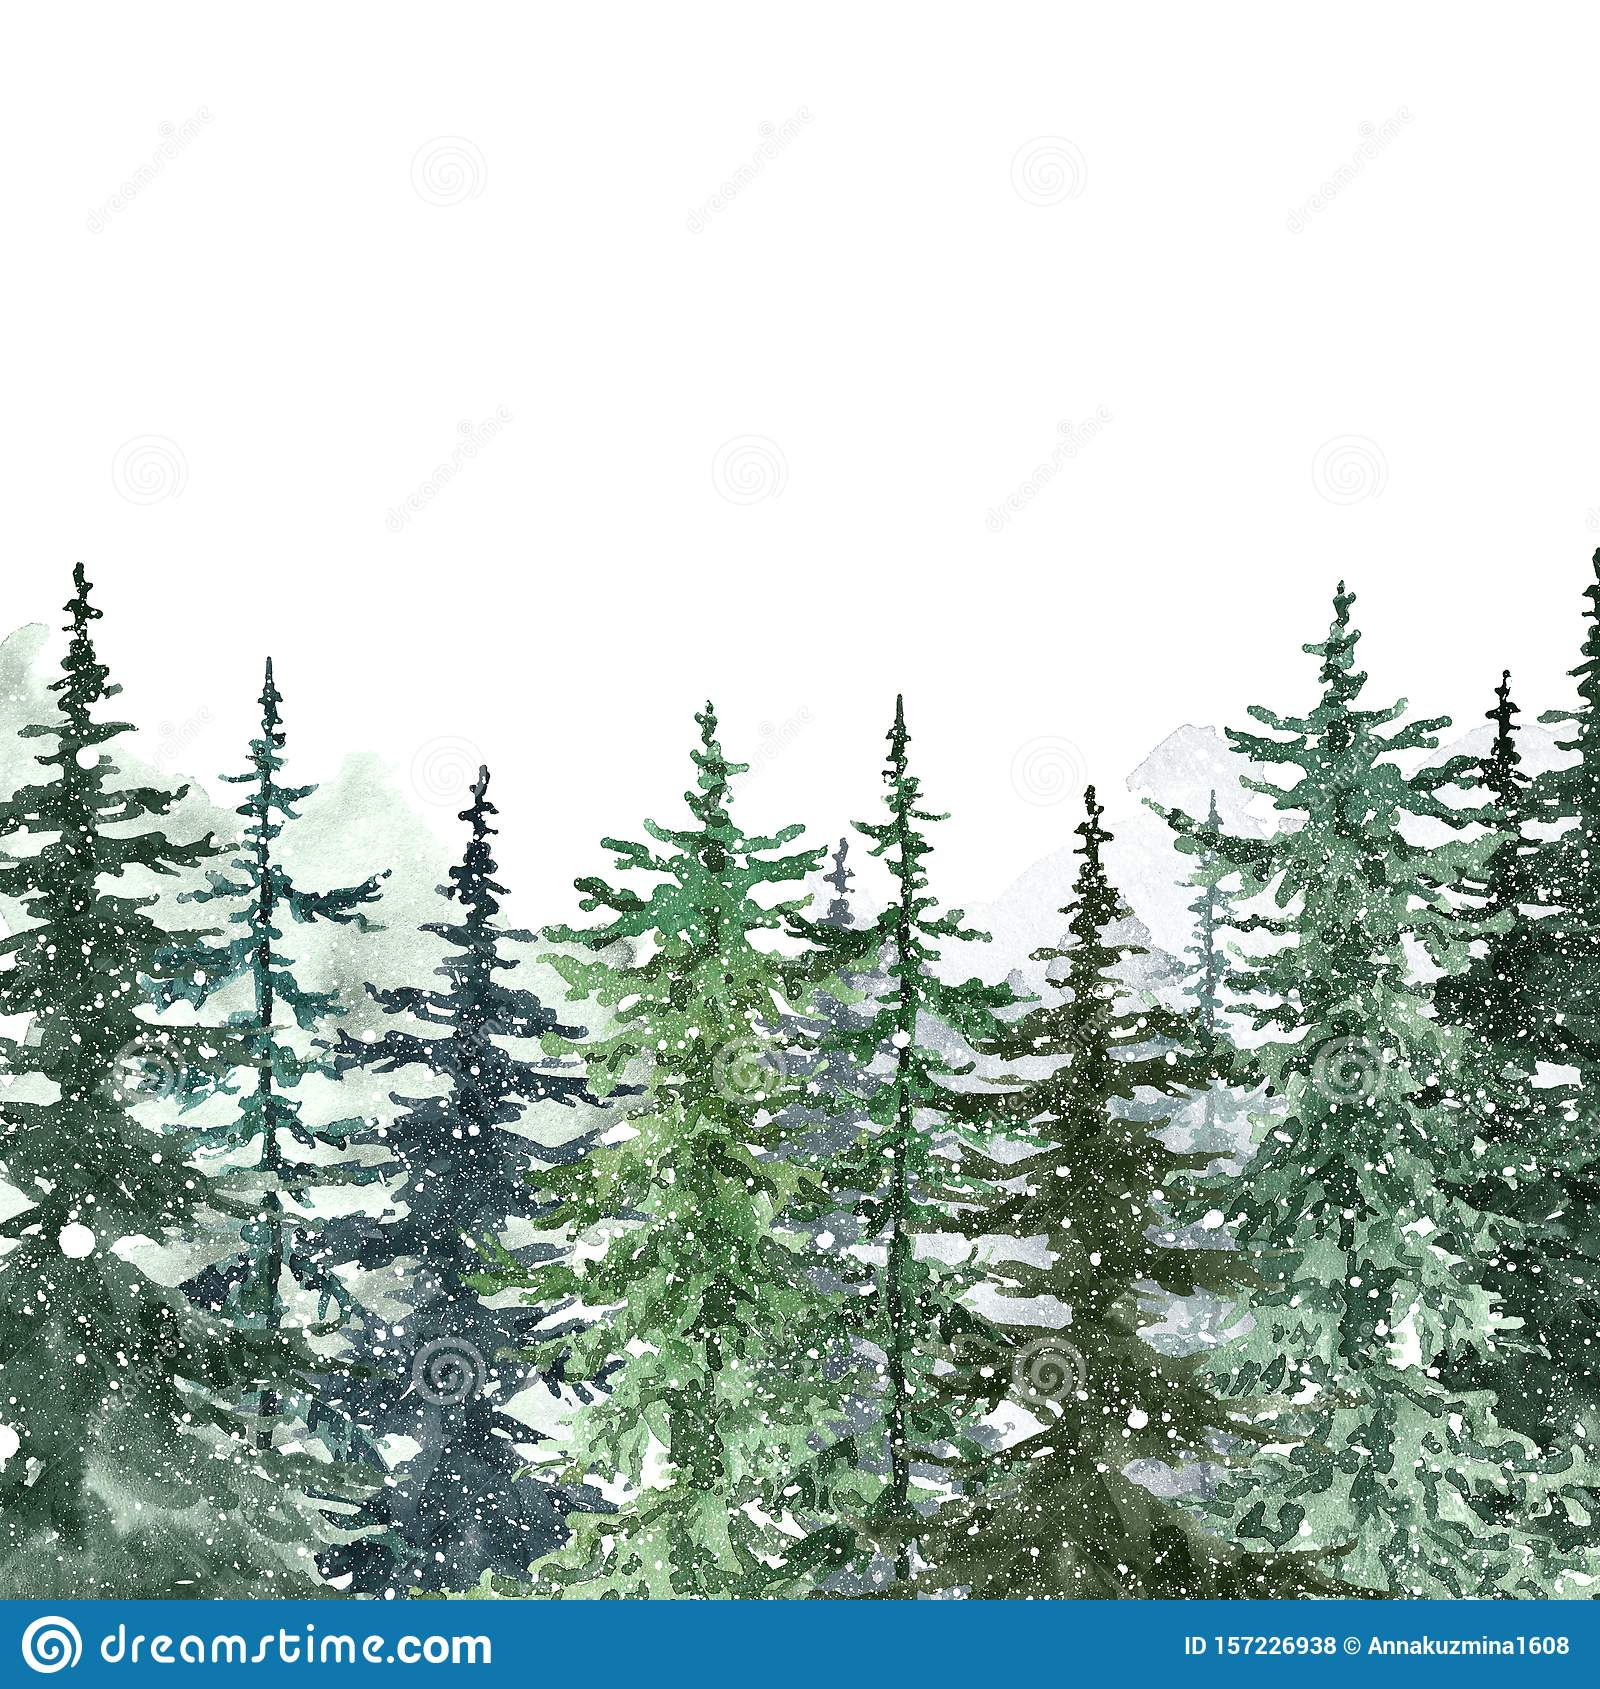 watercolor snowy pine trees background banner with hand painted forest and falling snow on white winter wonderland stock illustration illustration of silhouette greenery 157226938 https www dreamstime com watercolor snowy pine trees background banner hand painted pine forest falling snowon white winter wonderland watercolor image157226938